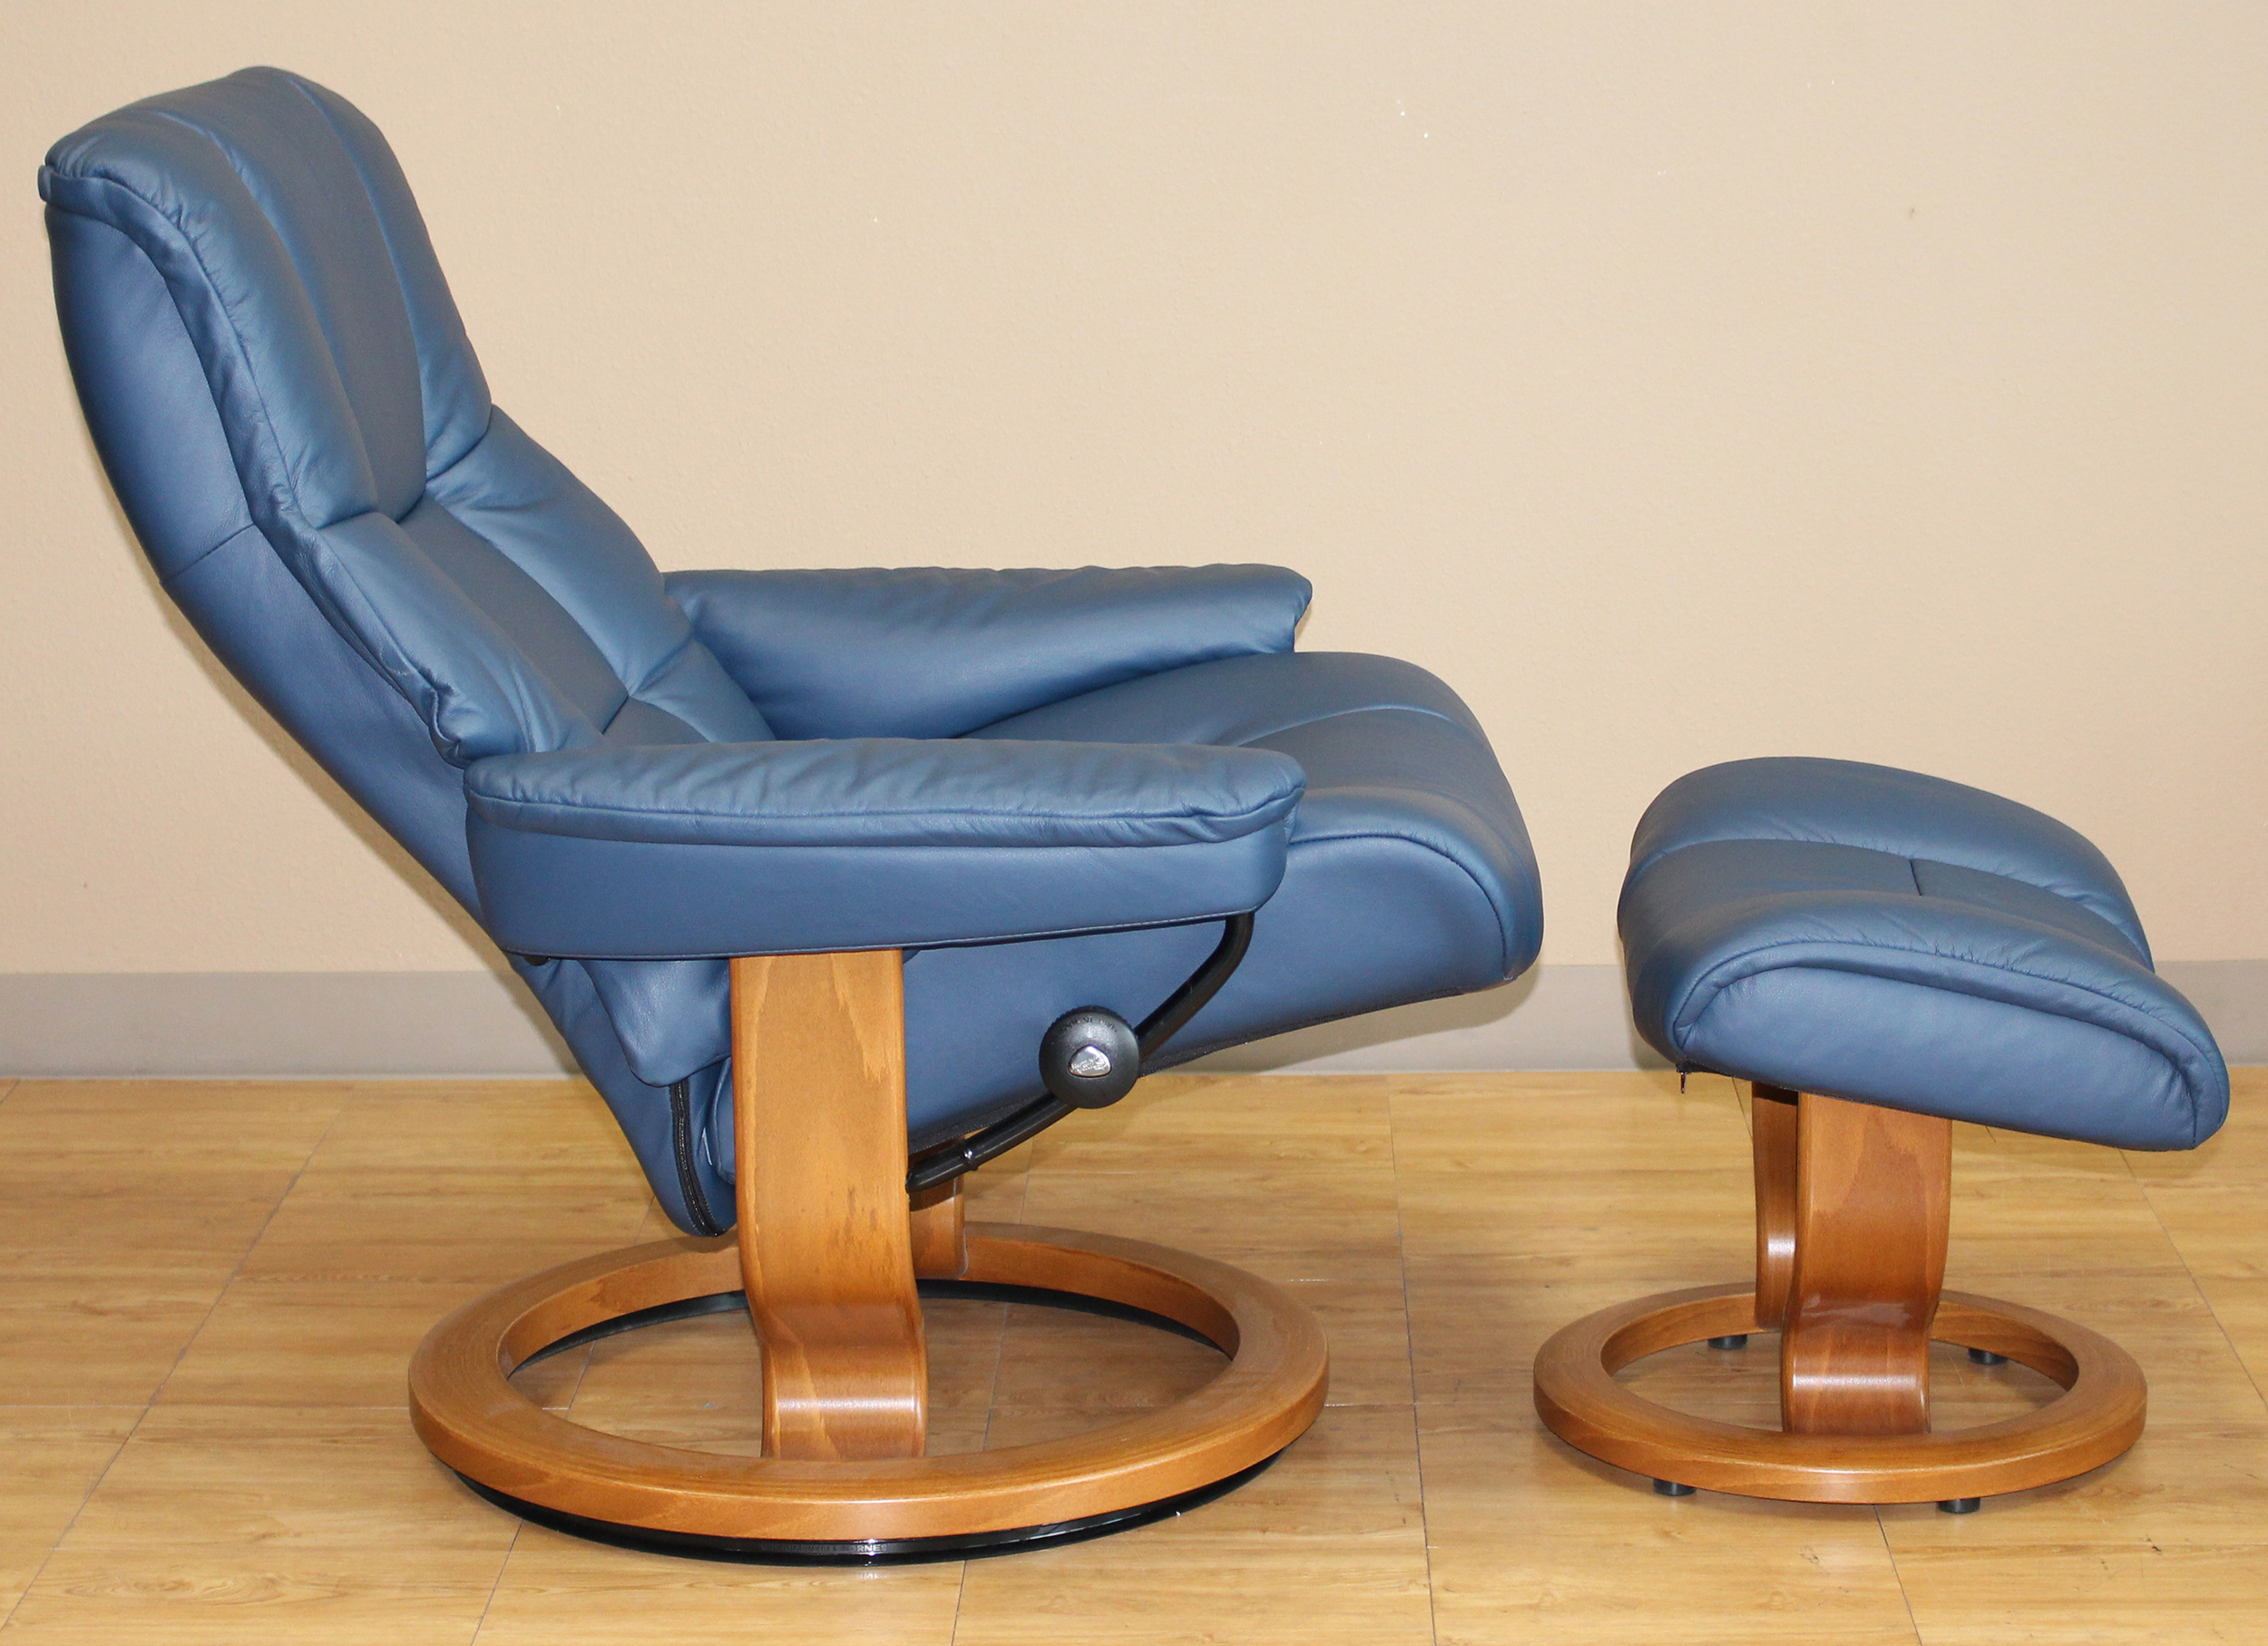 Stressless Kensington Large Mayfair Paloma Oxford Blue Leather Recliner Chair by Ekornes & Stressless Kensington Large Mayfair Paloma Oxford Blue Leather ... islam-shia.org